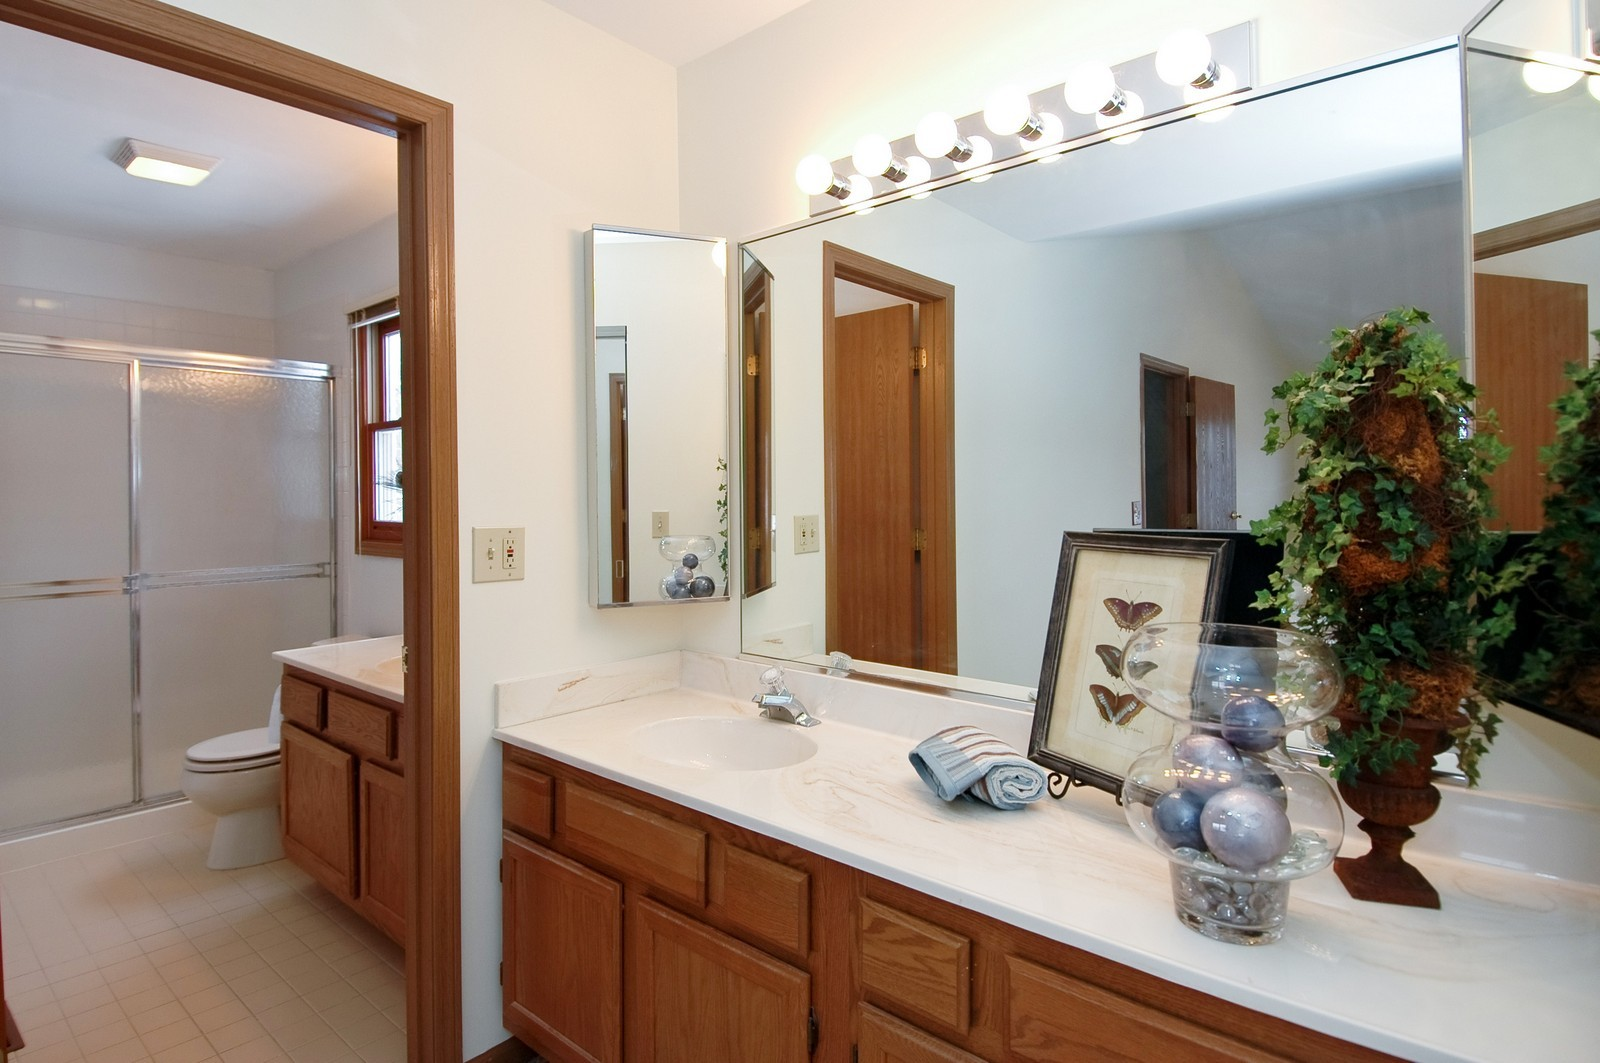 Real Estate Photography - 62 Crystal Ridge Dr, Crystal Lake, IL, 60012 - Master Bathroom